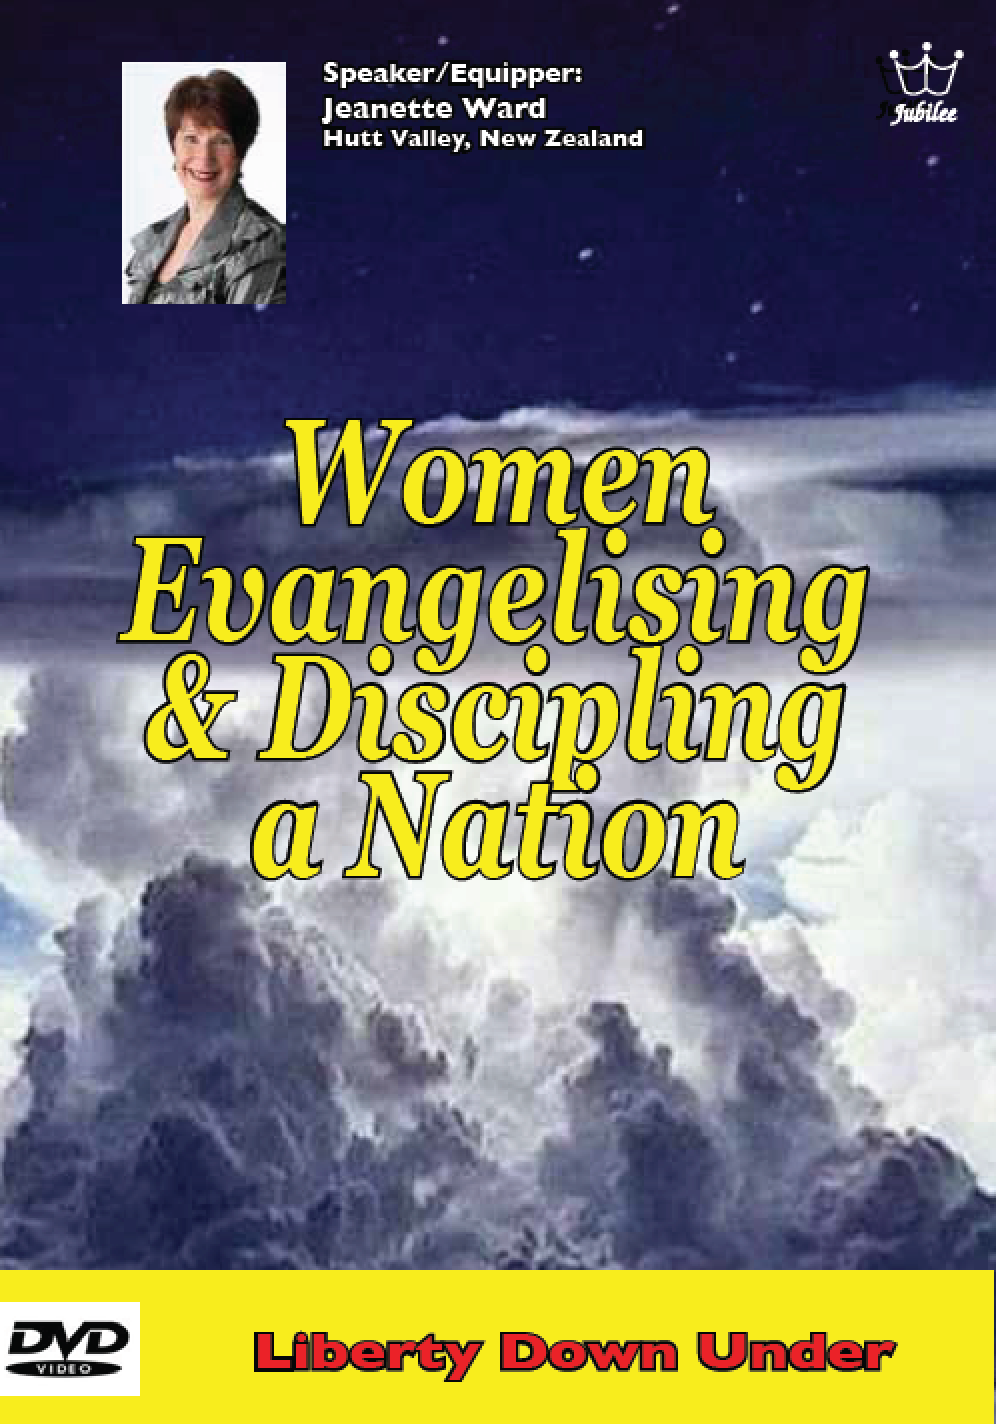 Women Evangelising & Discipling a nation, by Jeanette Ward, MP4 # MWEW